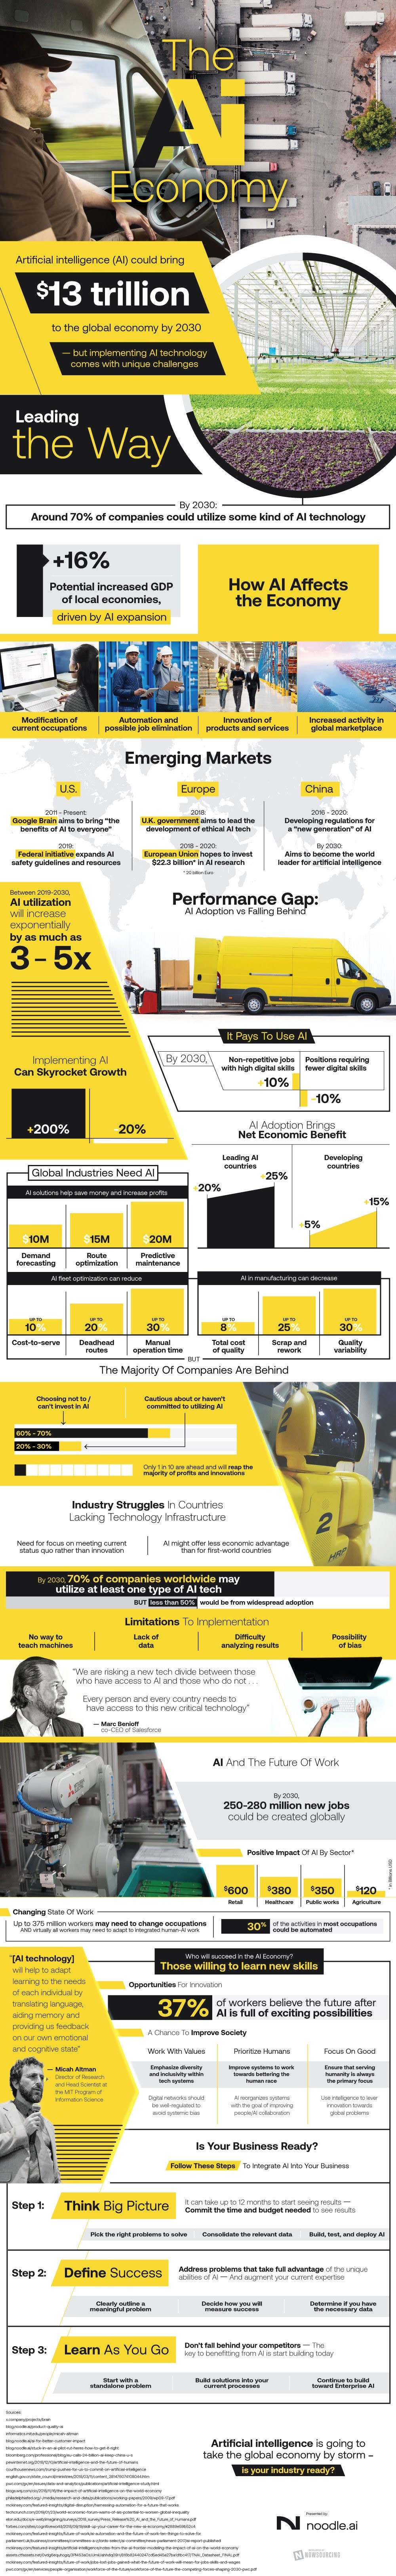 Understanding AI In The Economy #infographic